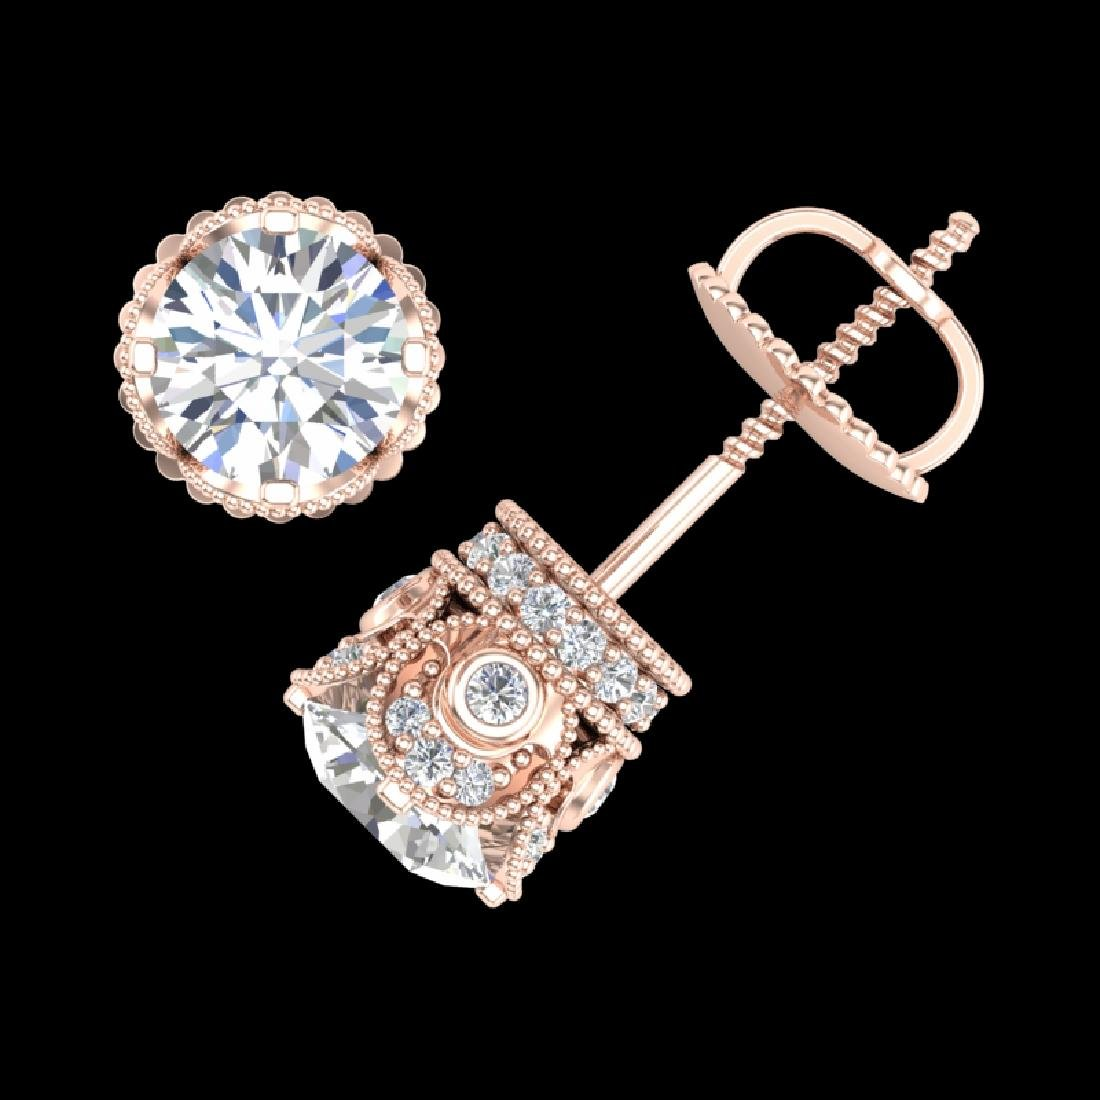 1.85 CTW VS/SI Diamond Solitaire Art Deco Stud Earrings